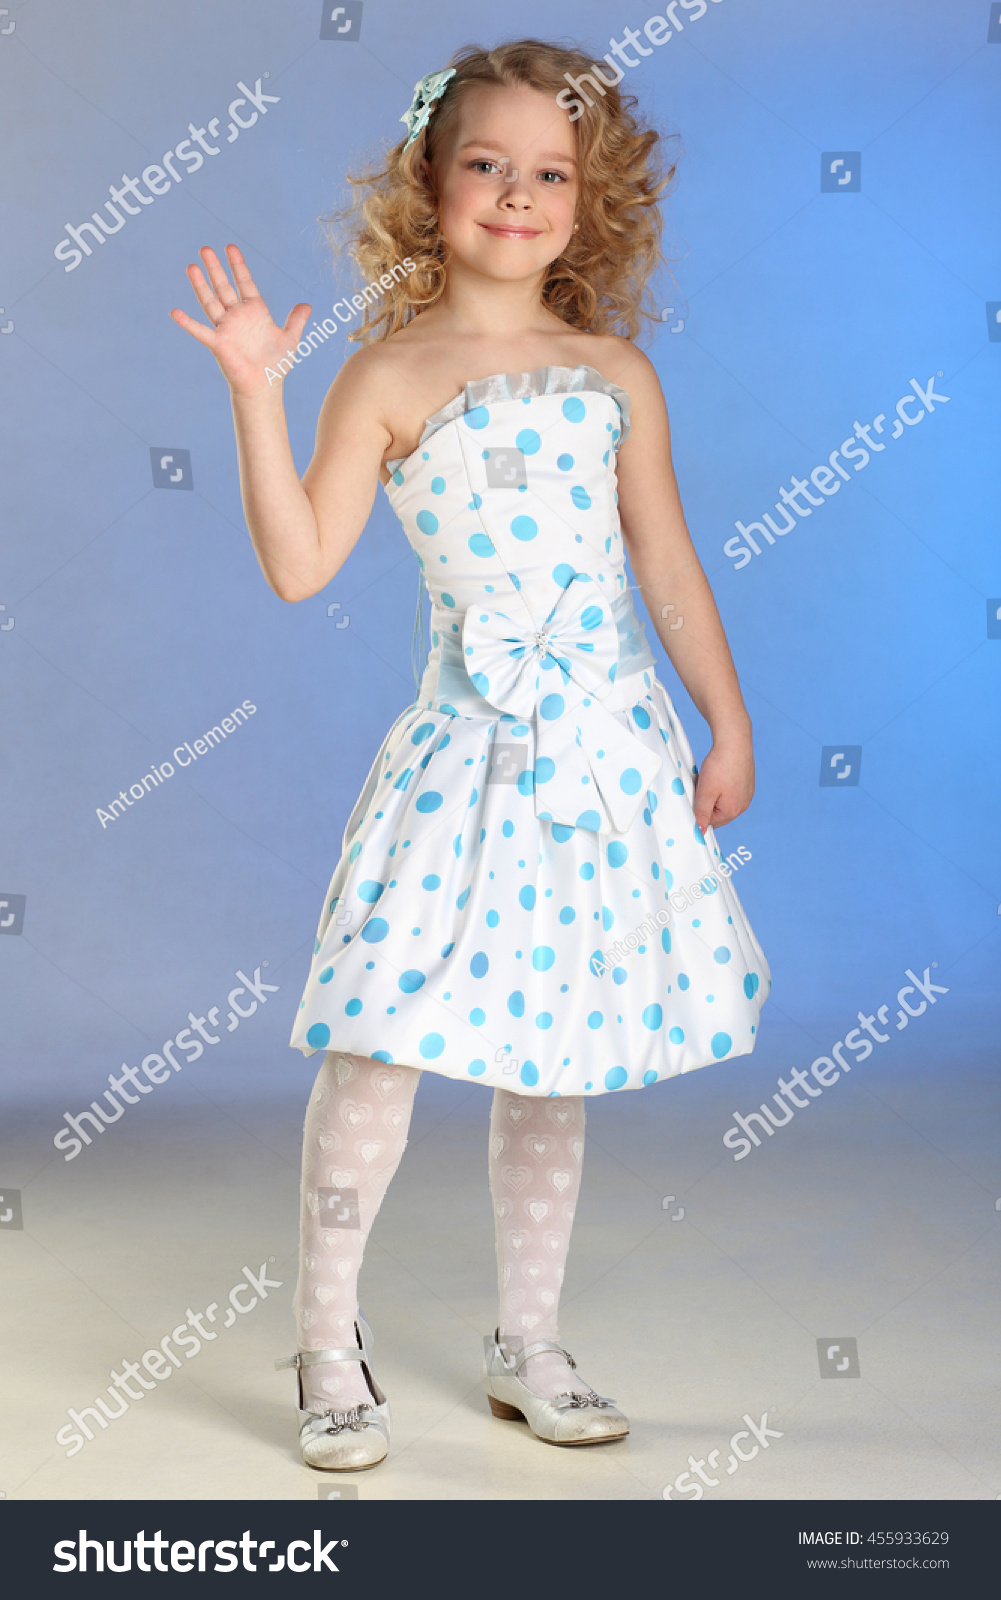 Baby in white dress and white tights